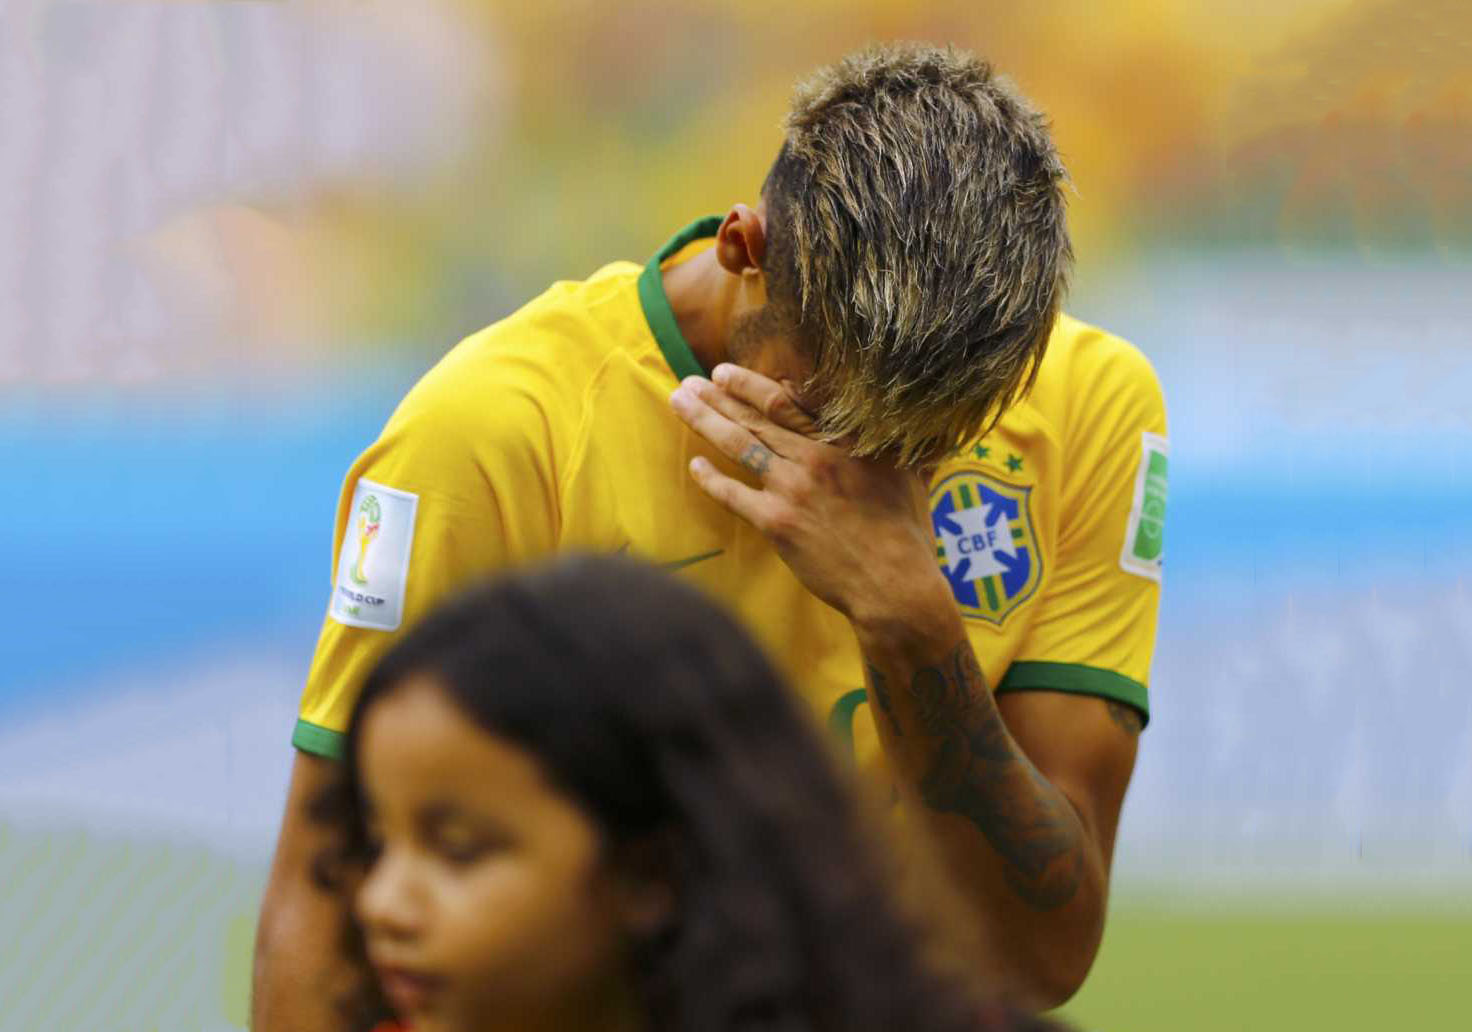 Neymar tears of emotion in the Brazilian National Anthem at the FIFA World Cup 2014